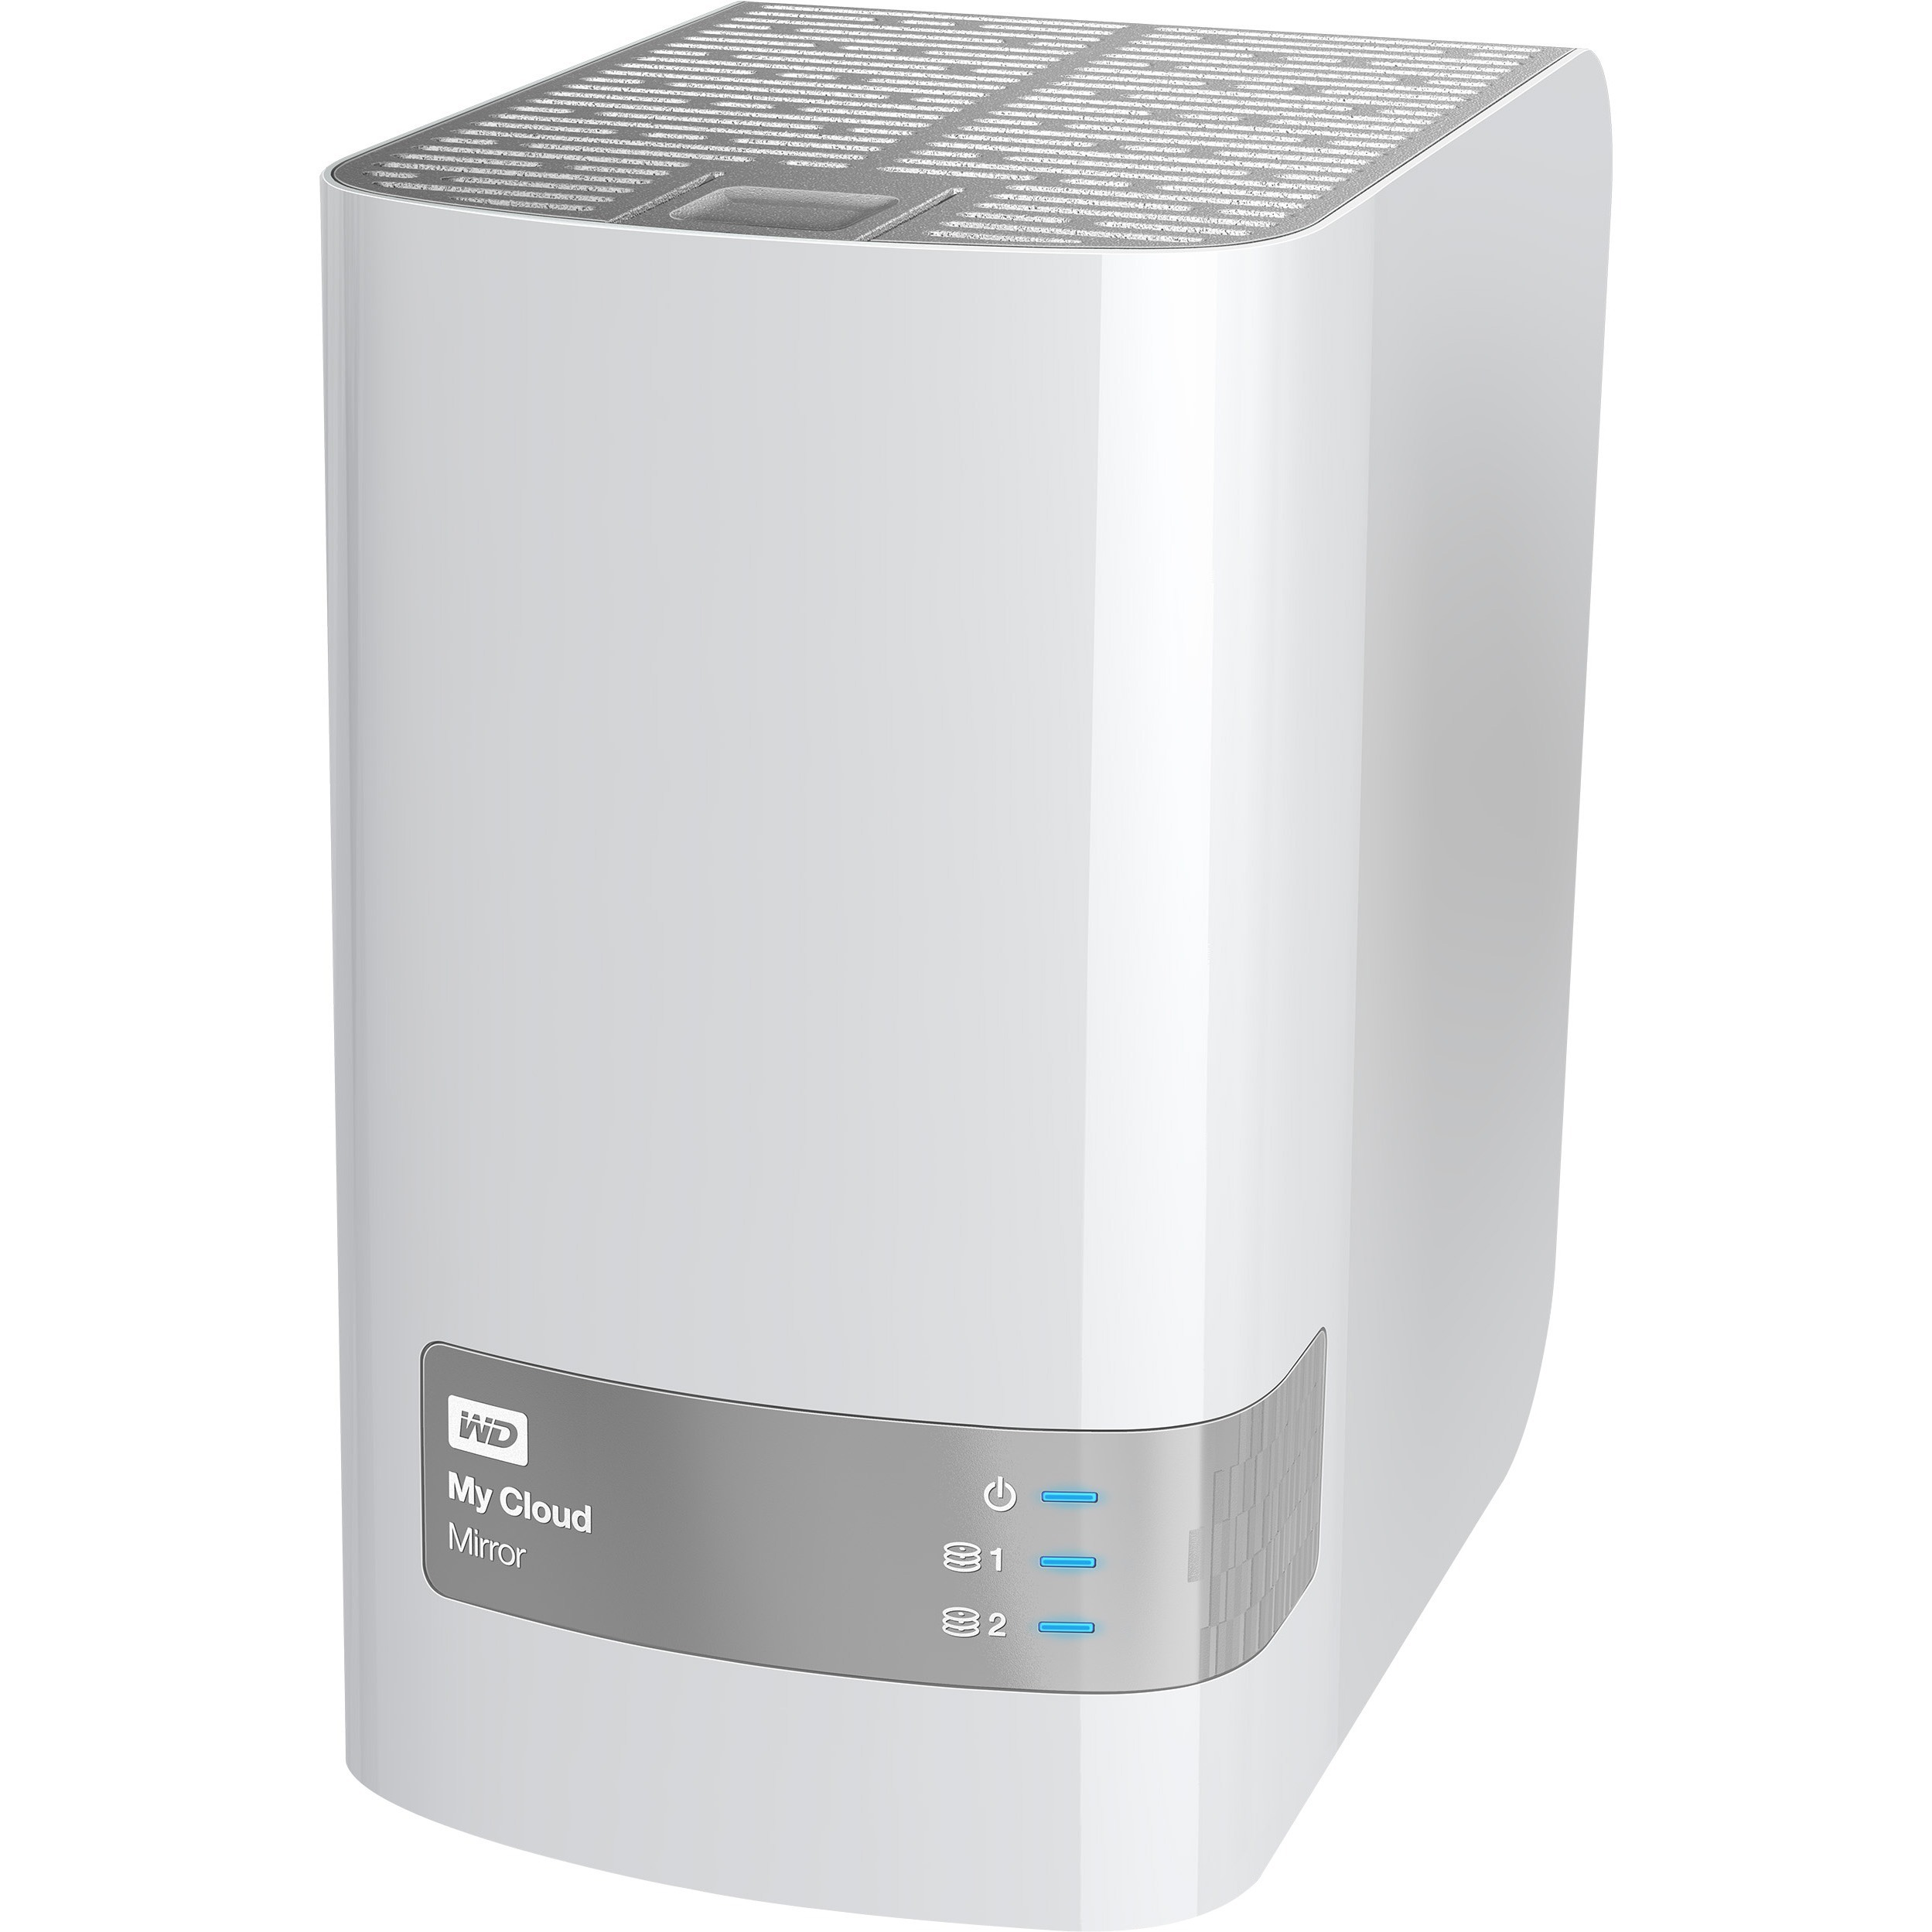 WD My Cloud Mirror WDBWVZ0120JWT-EESN 2 x Total Bays NAS Server - Desktop